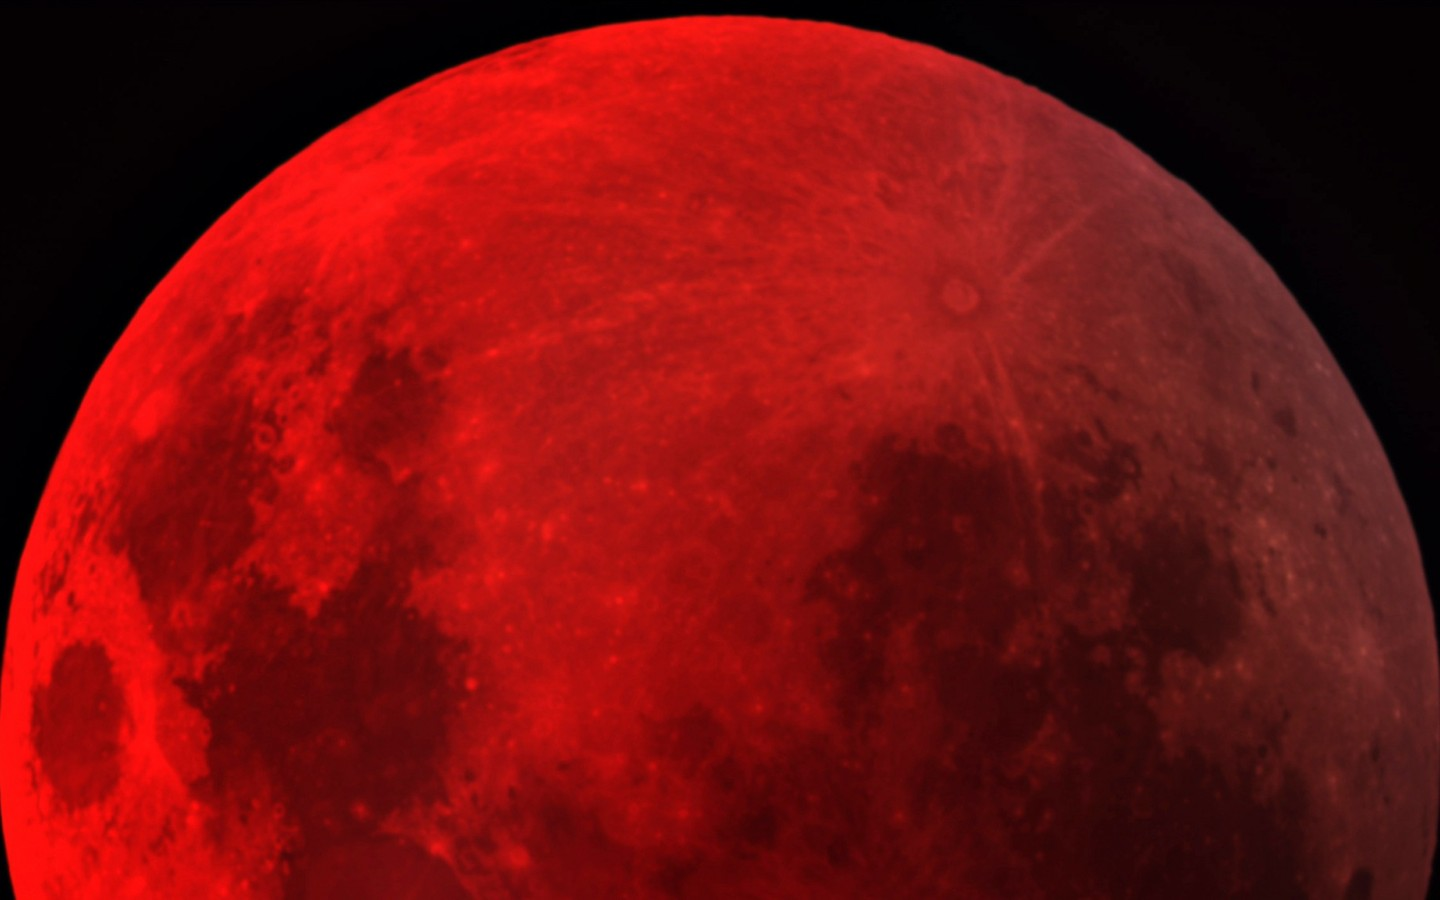 Here's when to watch tonight's rare 'blood moon' eclipse